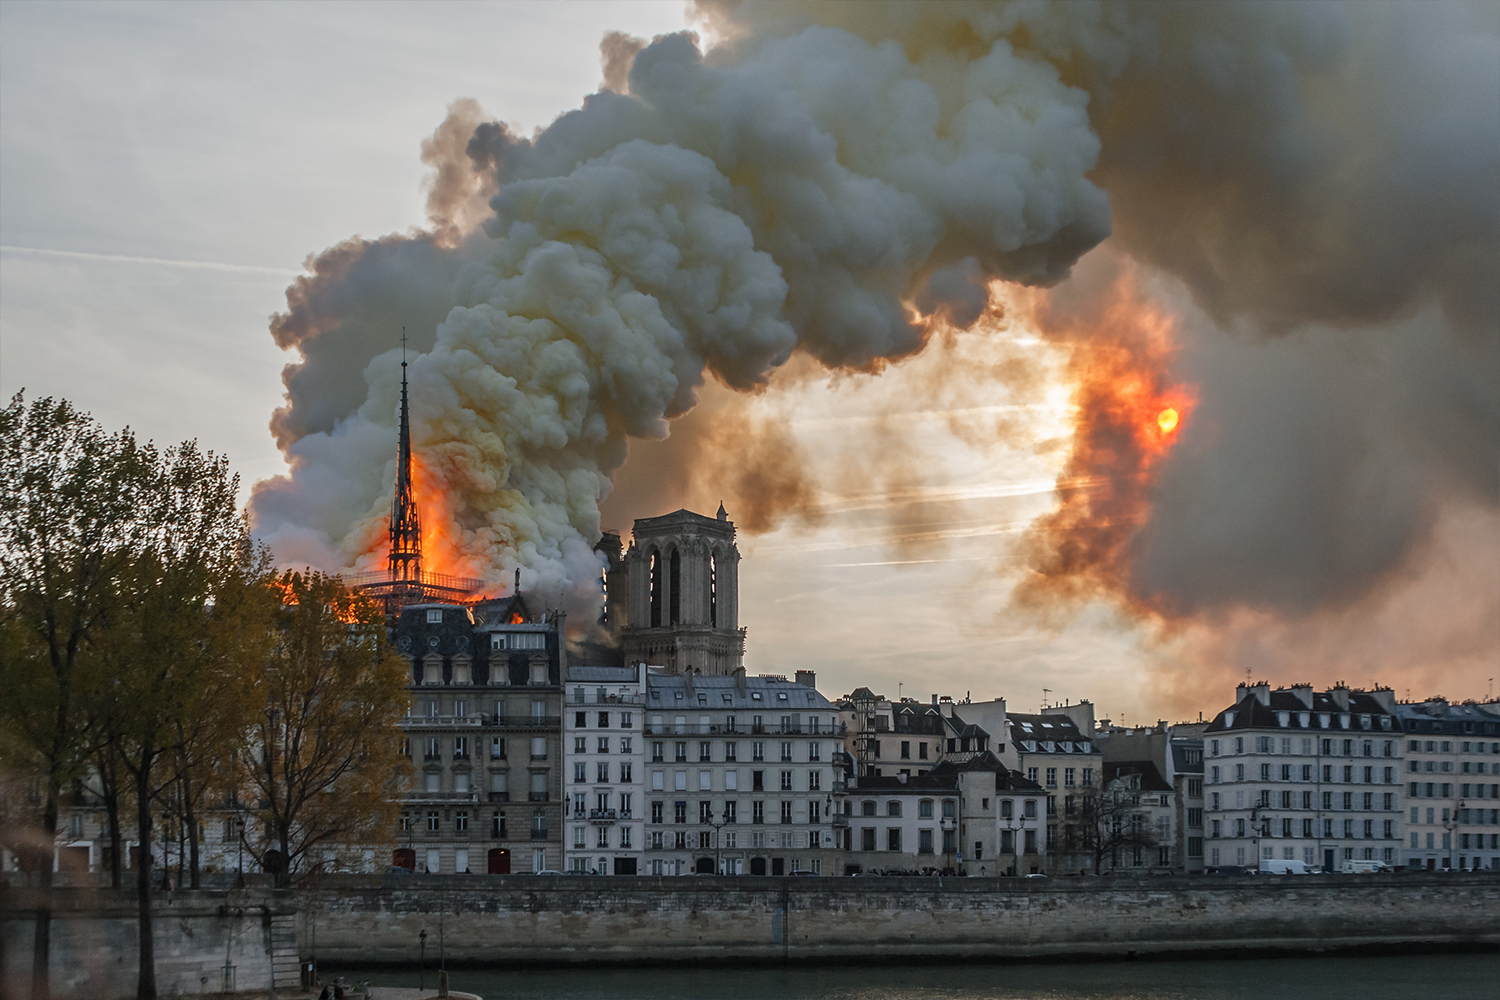 The fire at Notre Dame on April 15